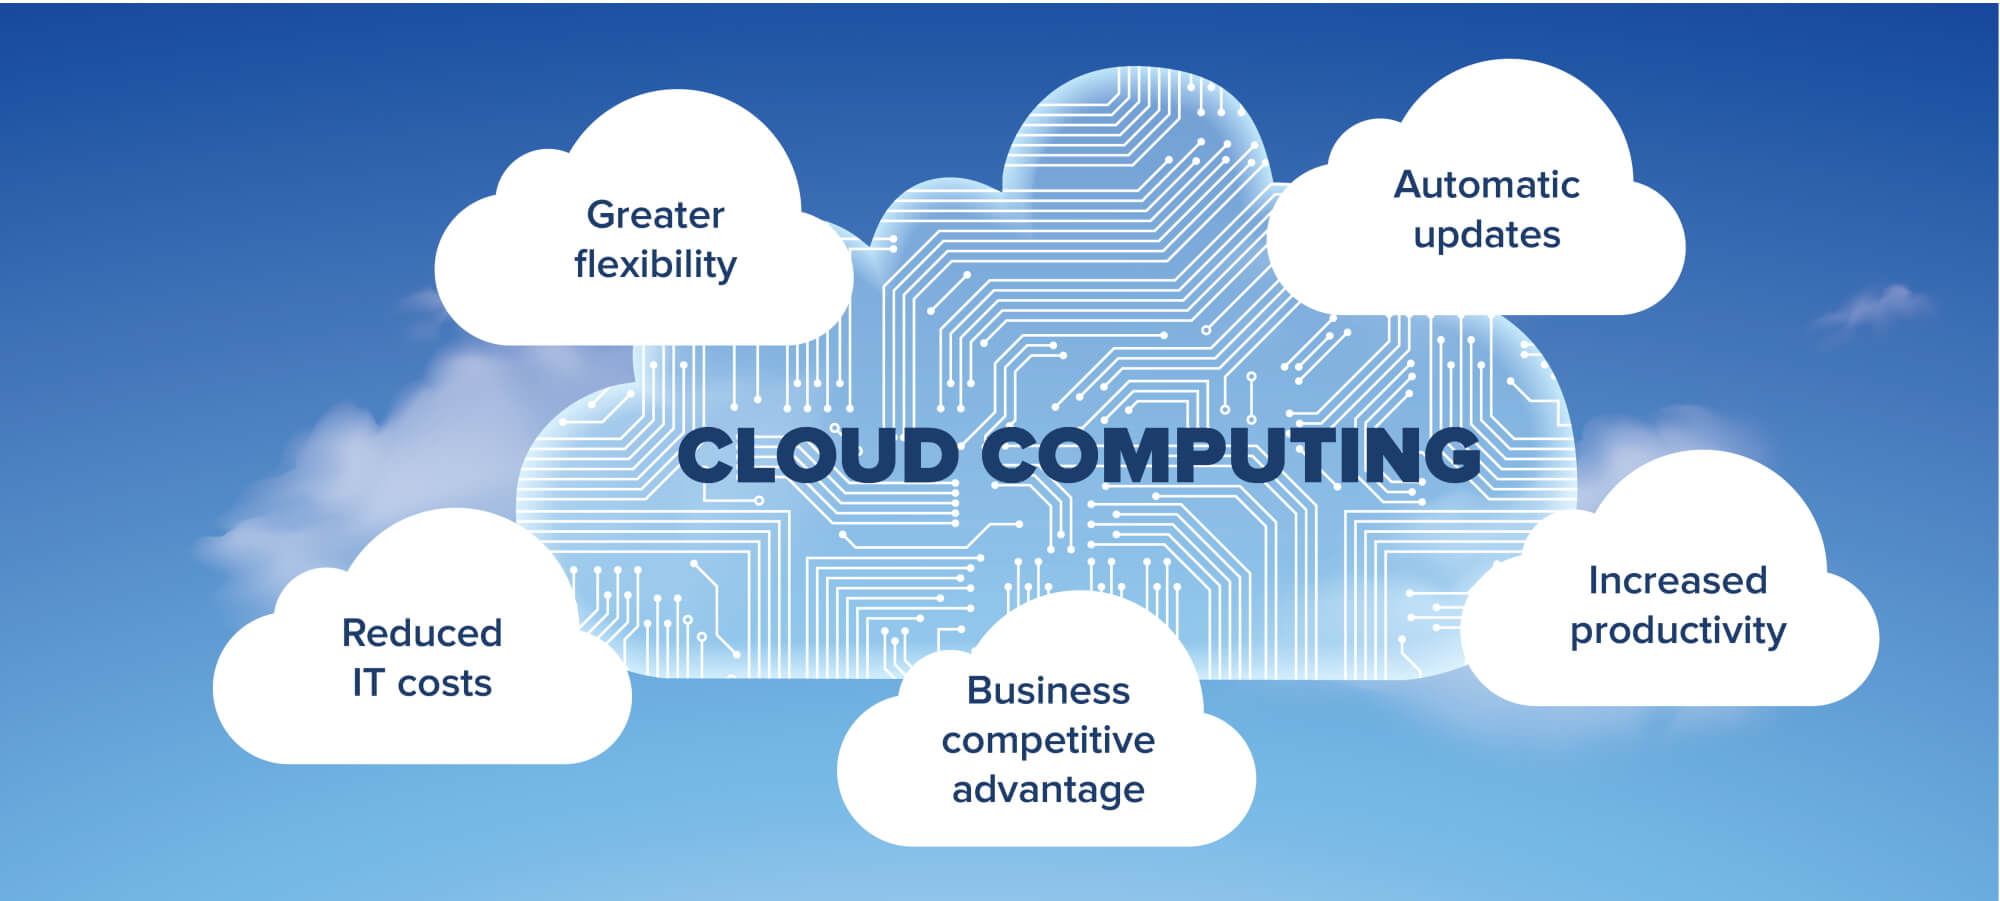 """Everything You Need to Know About Cloud Computing - Image 5"""